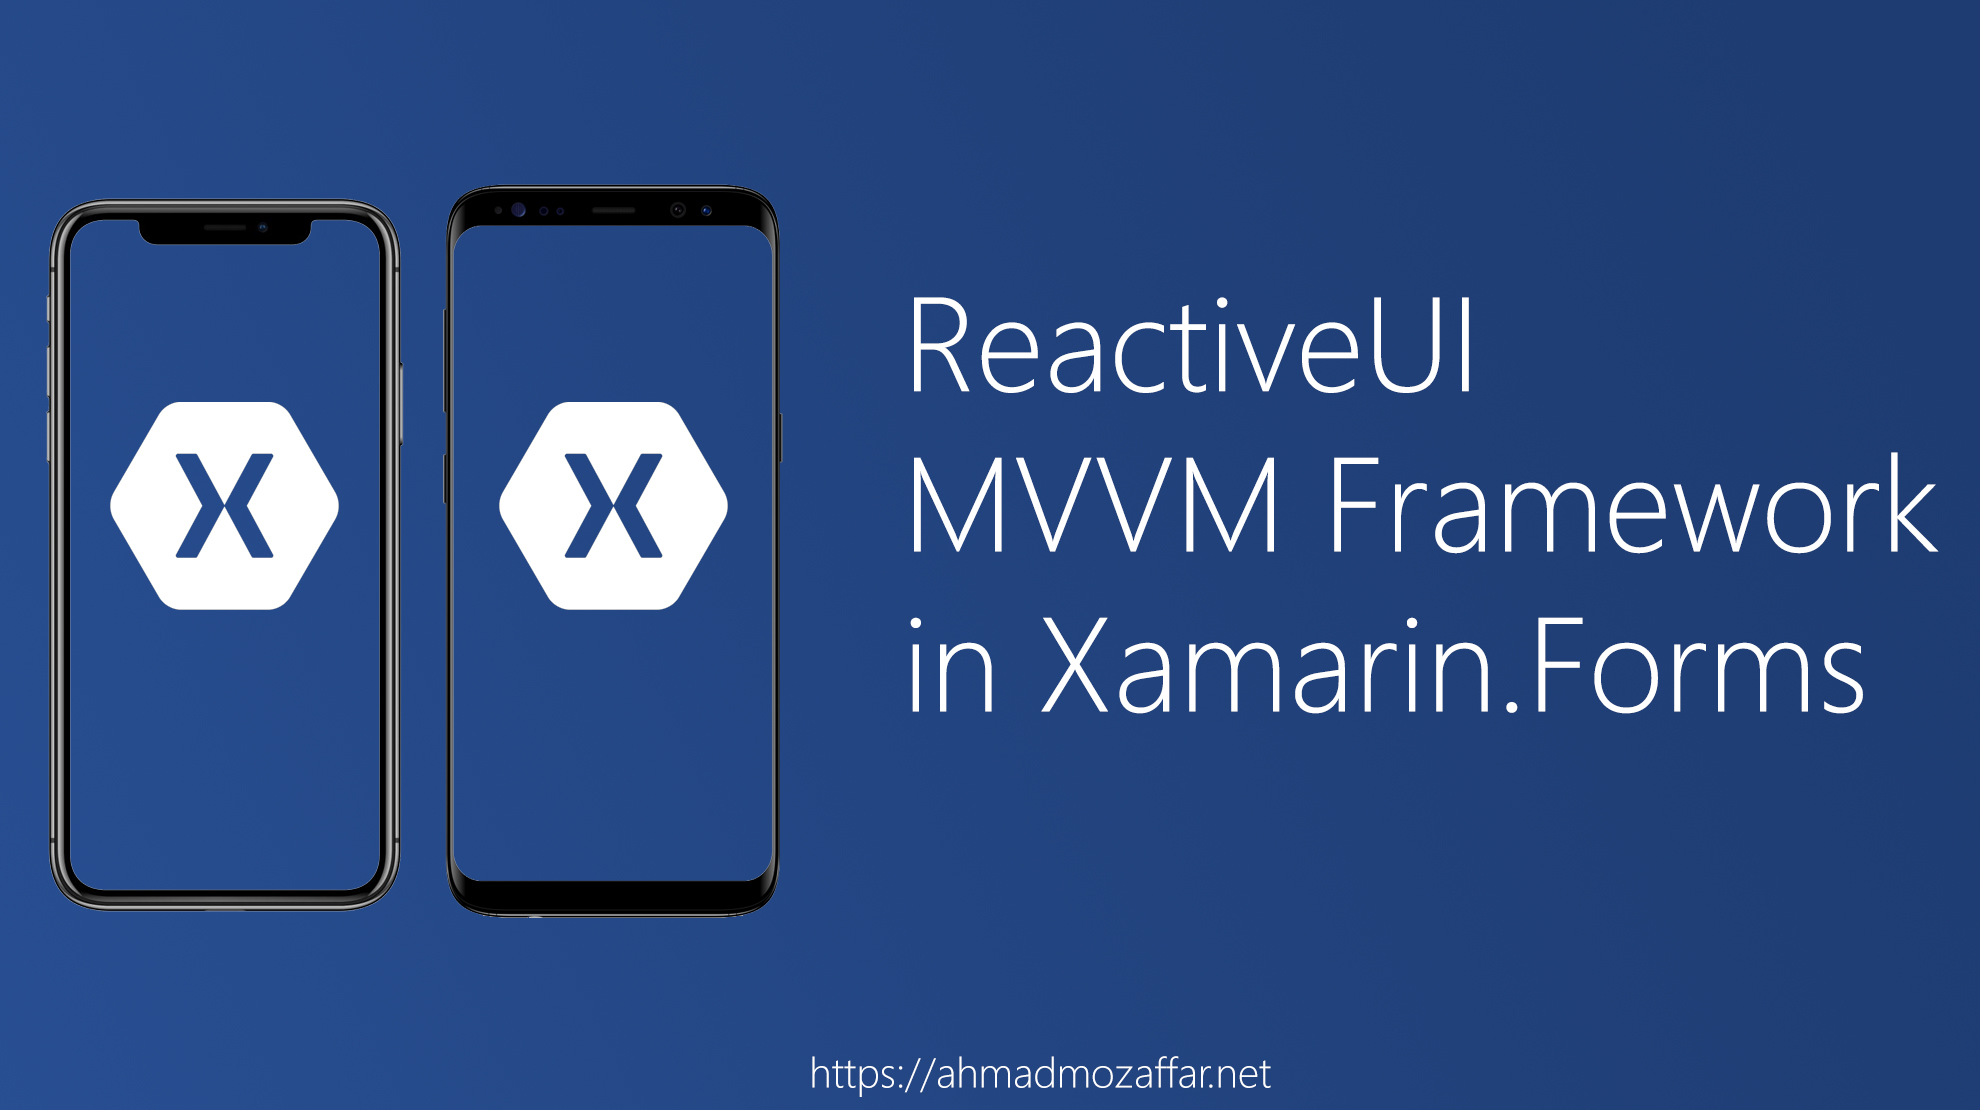 MVVM in Xamarin.Forms with ReactiveUI